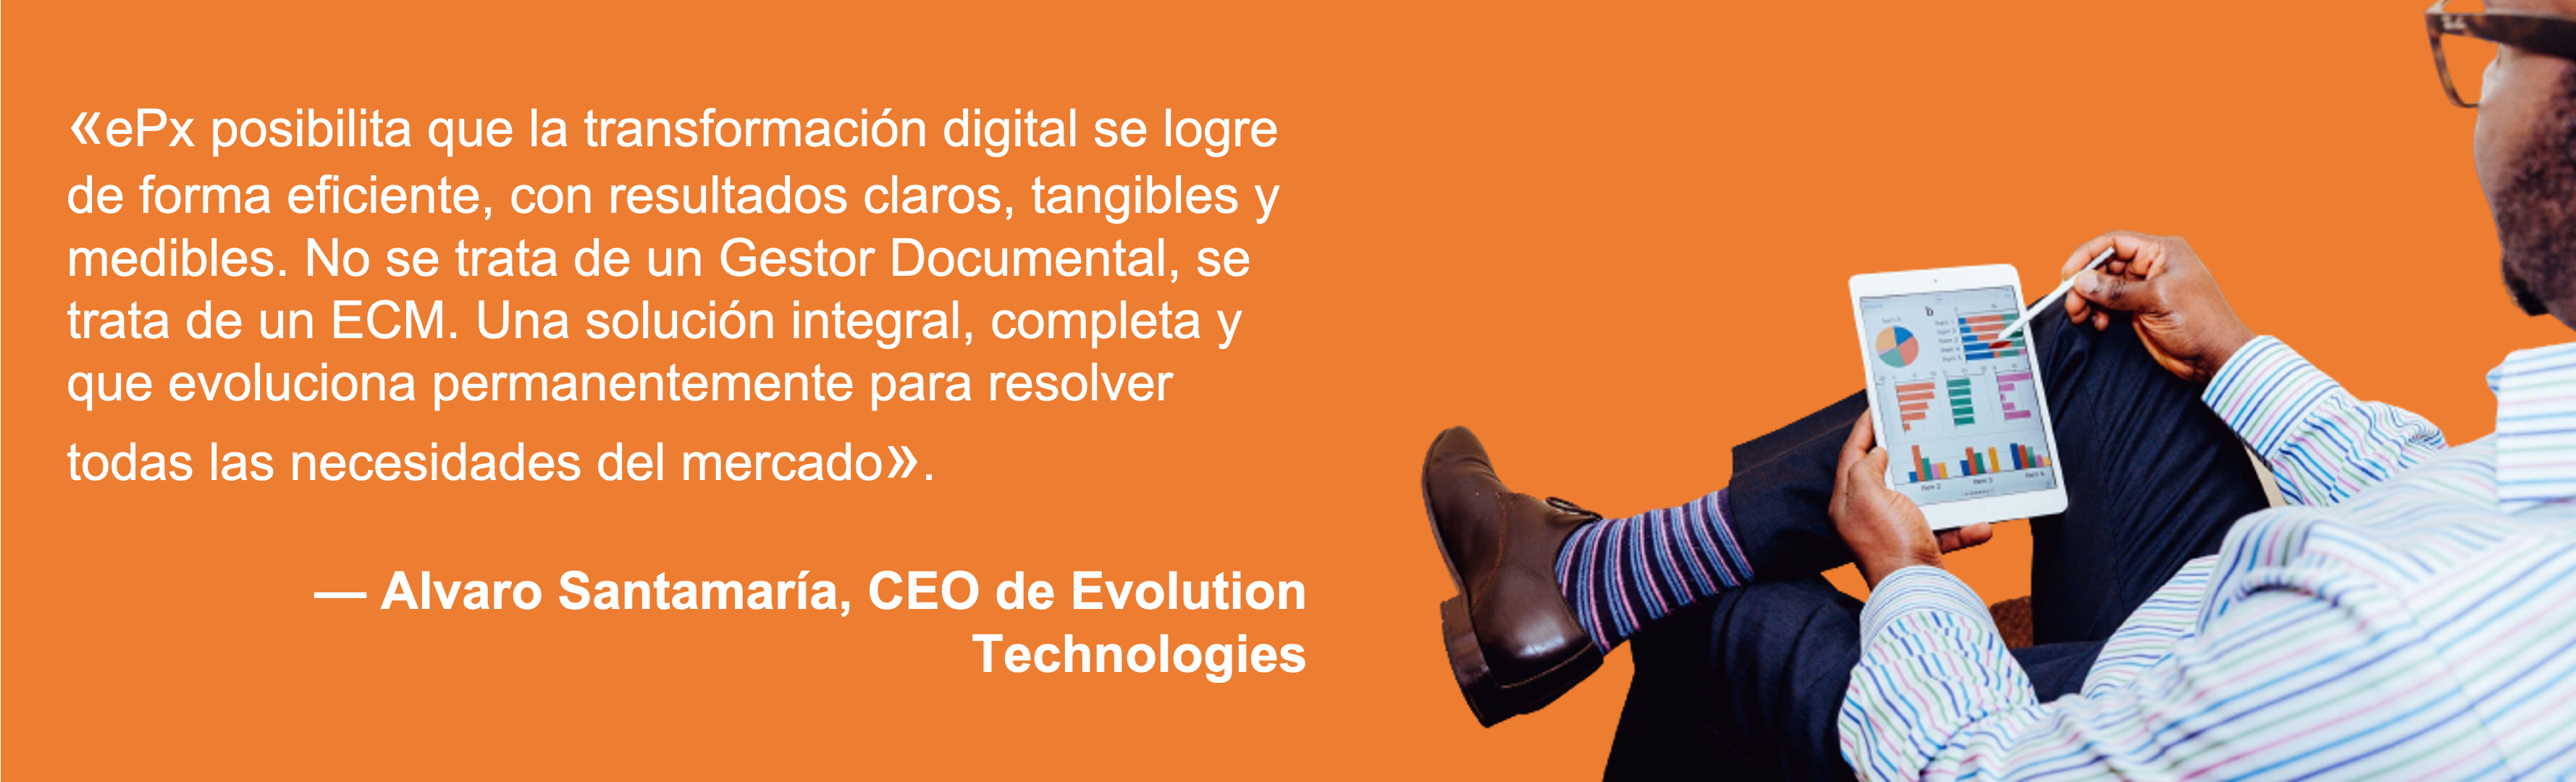 ECM ePx - Evolution - Gestión Documental